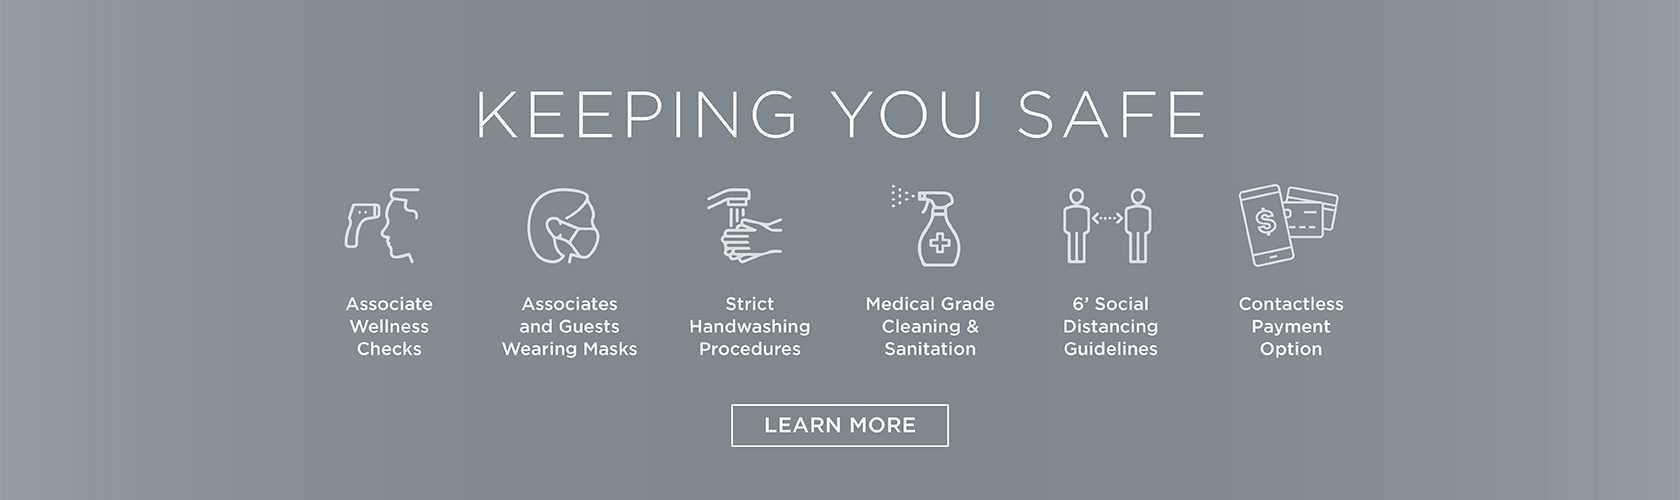 Keeping you safe with associate wellness checks, associates and guests wearing masks, strict handwashing procedures, medical grade cleaning & sanitation, 6' social distancing guidelines and contactless payment options. Learn More.